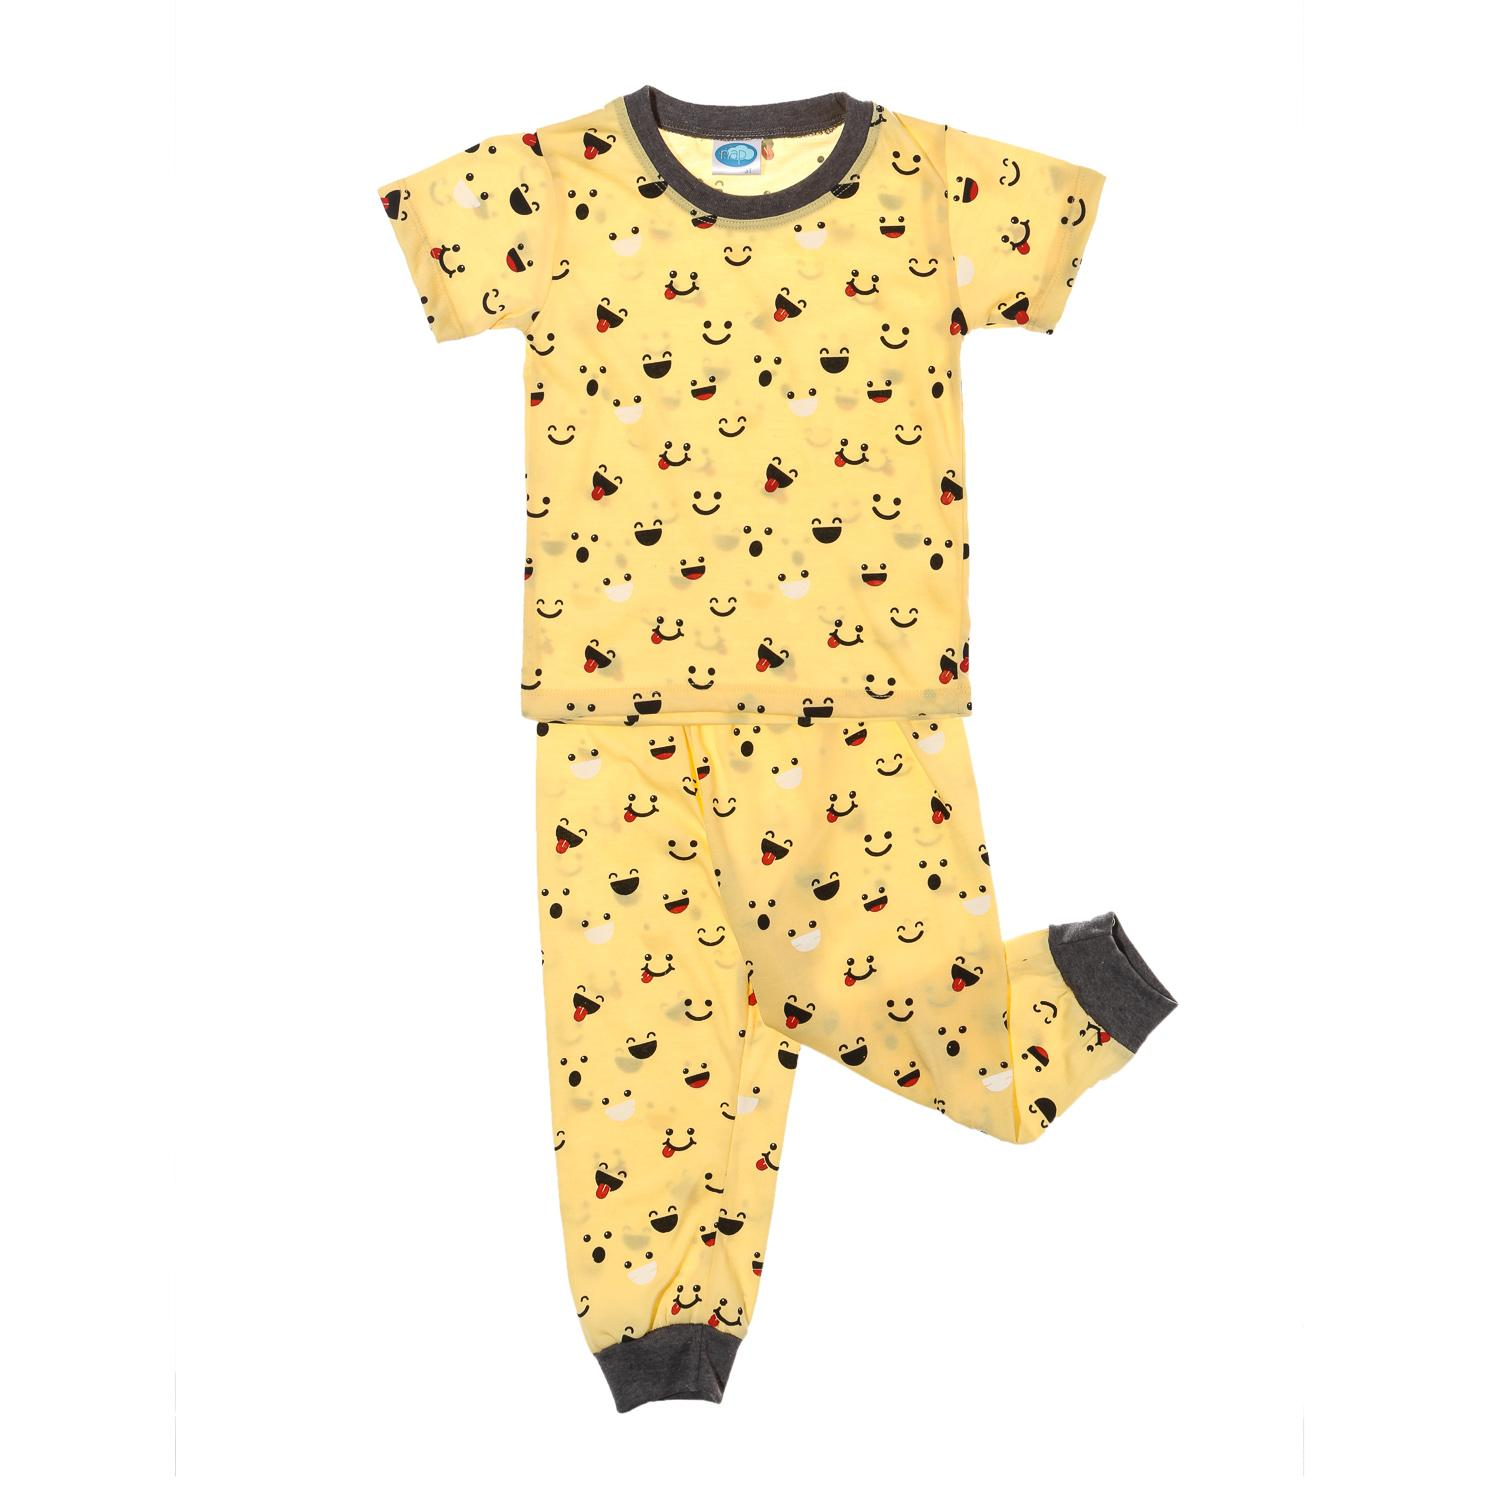 0a99bd05e30 Boys Clothing for sale - Baby Clothing for Boys online brands ...